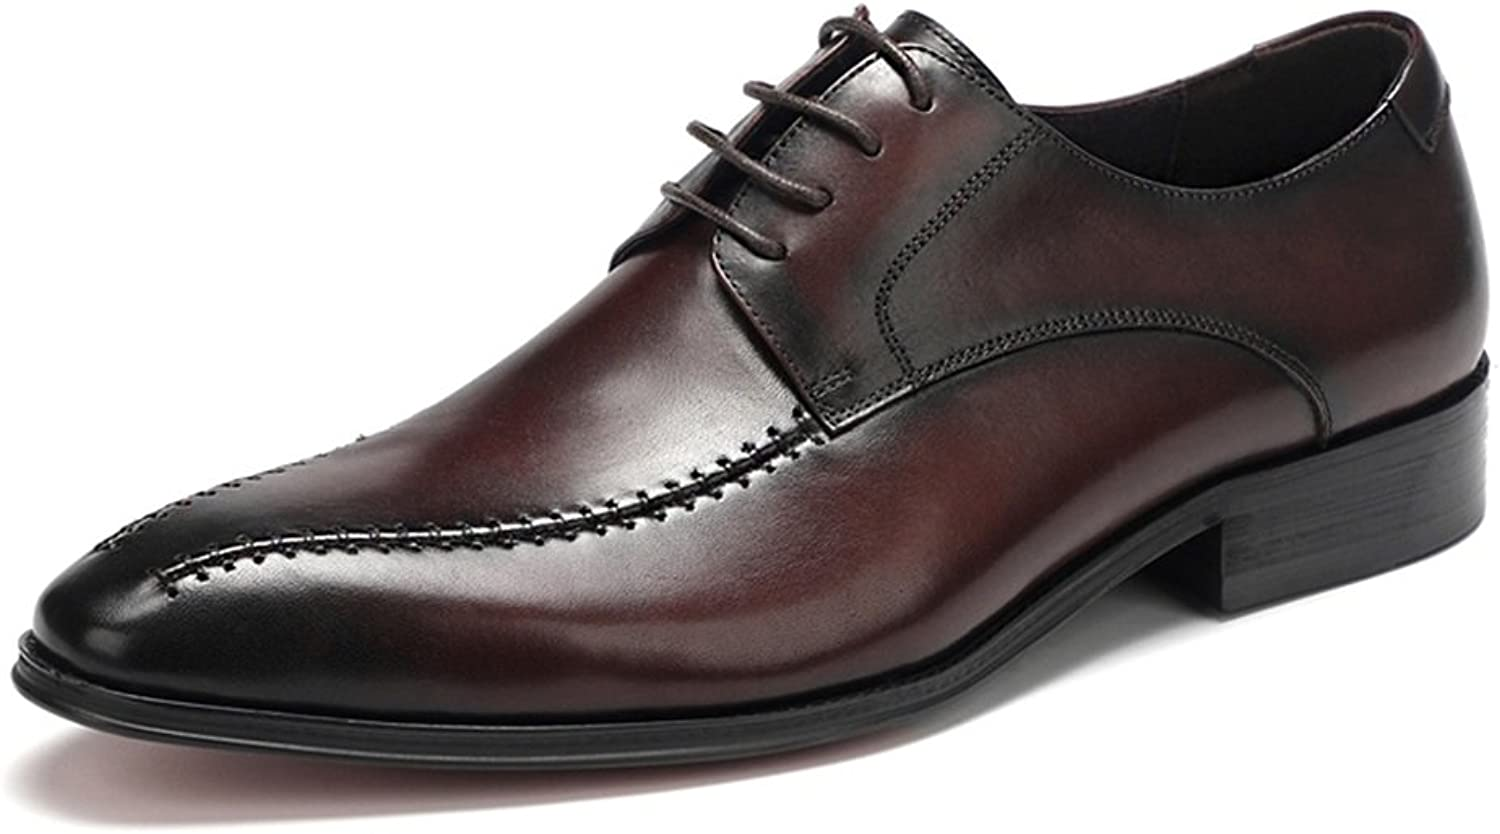 HUAN Men's Business shoes Spring Fall Comfort Oxfords Pointed Toe Leather Formal shoes Dress Wedding Evening Party